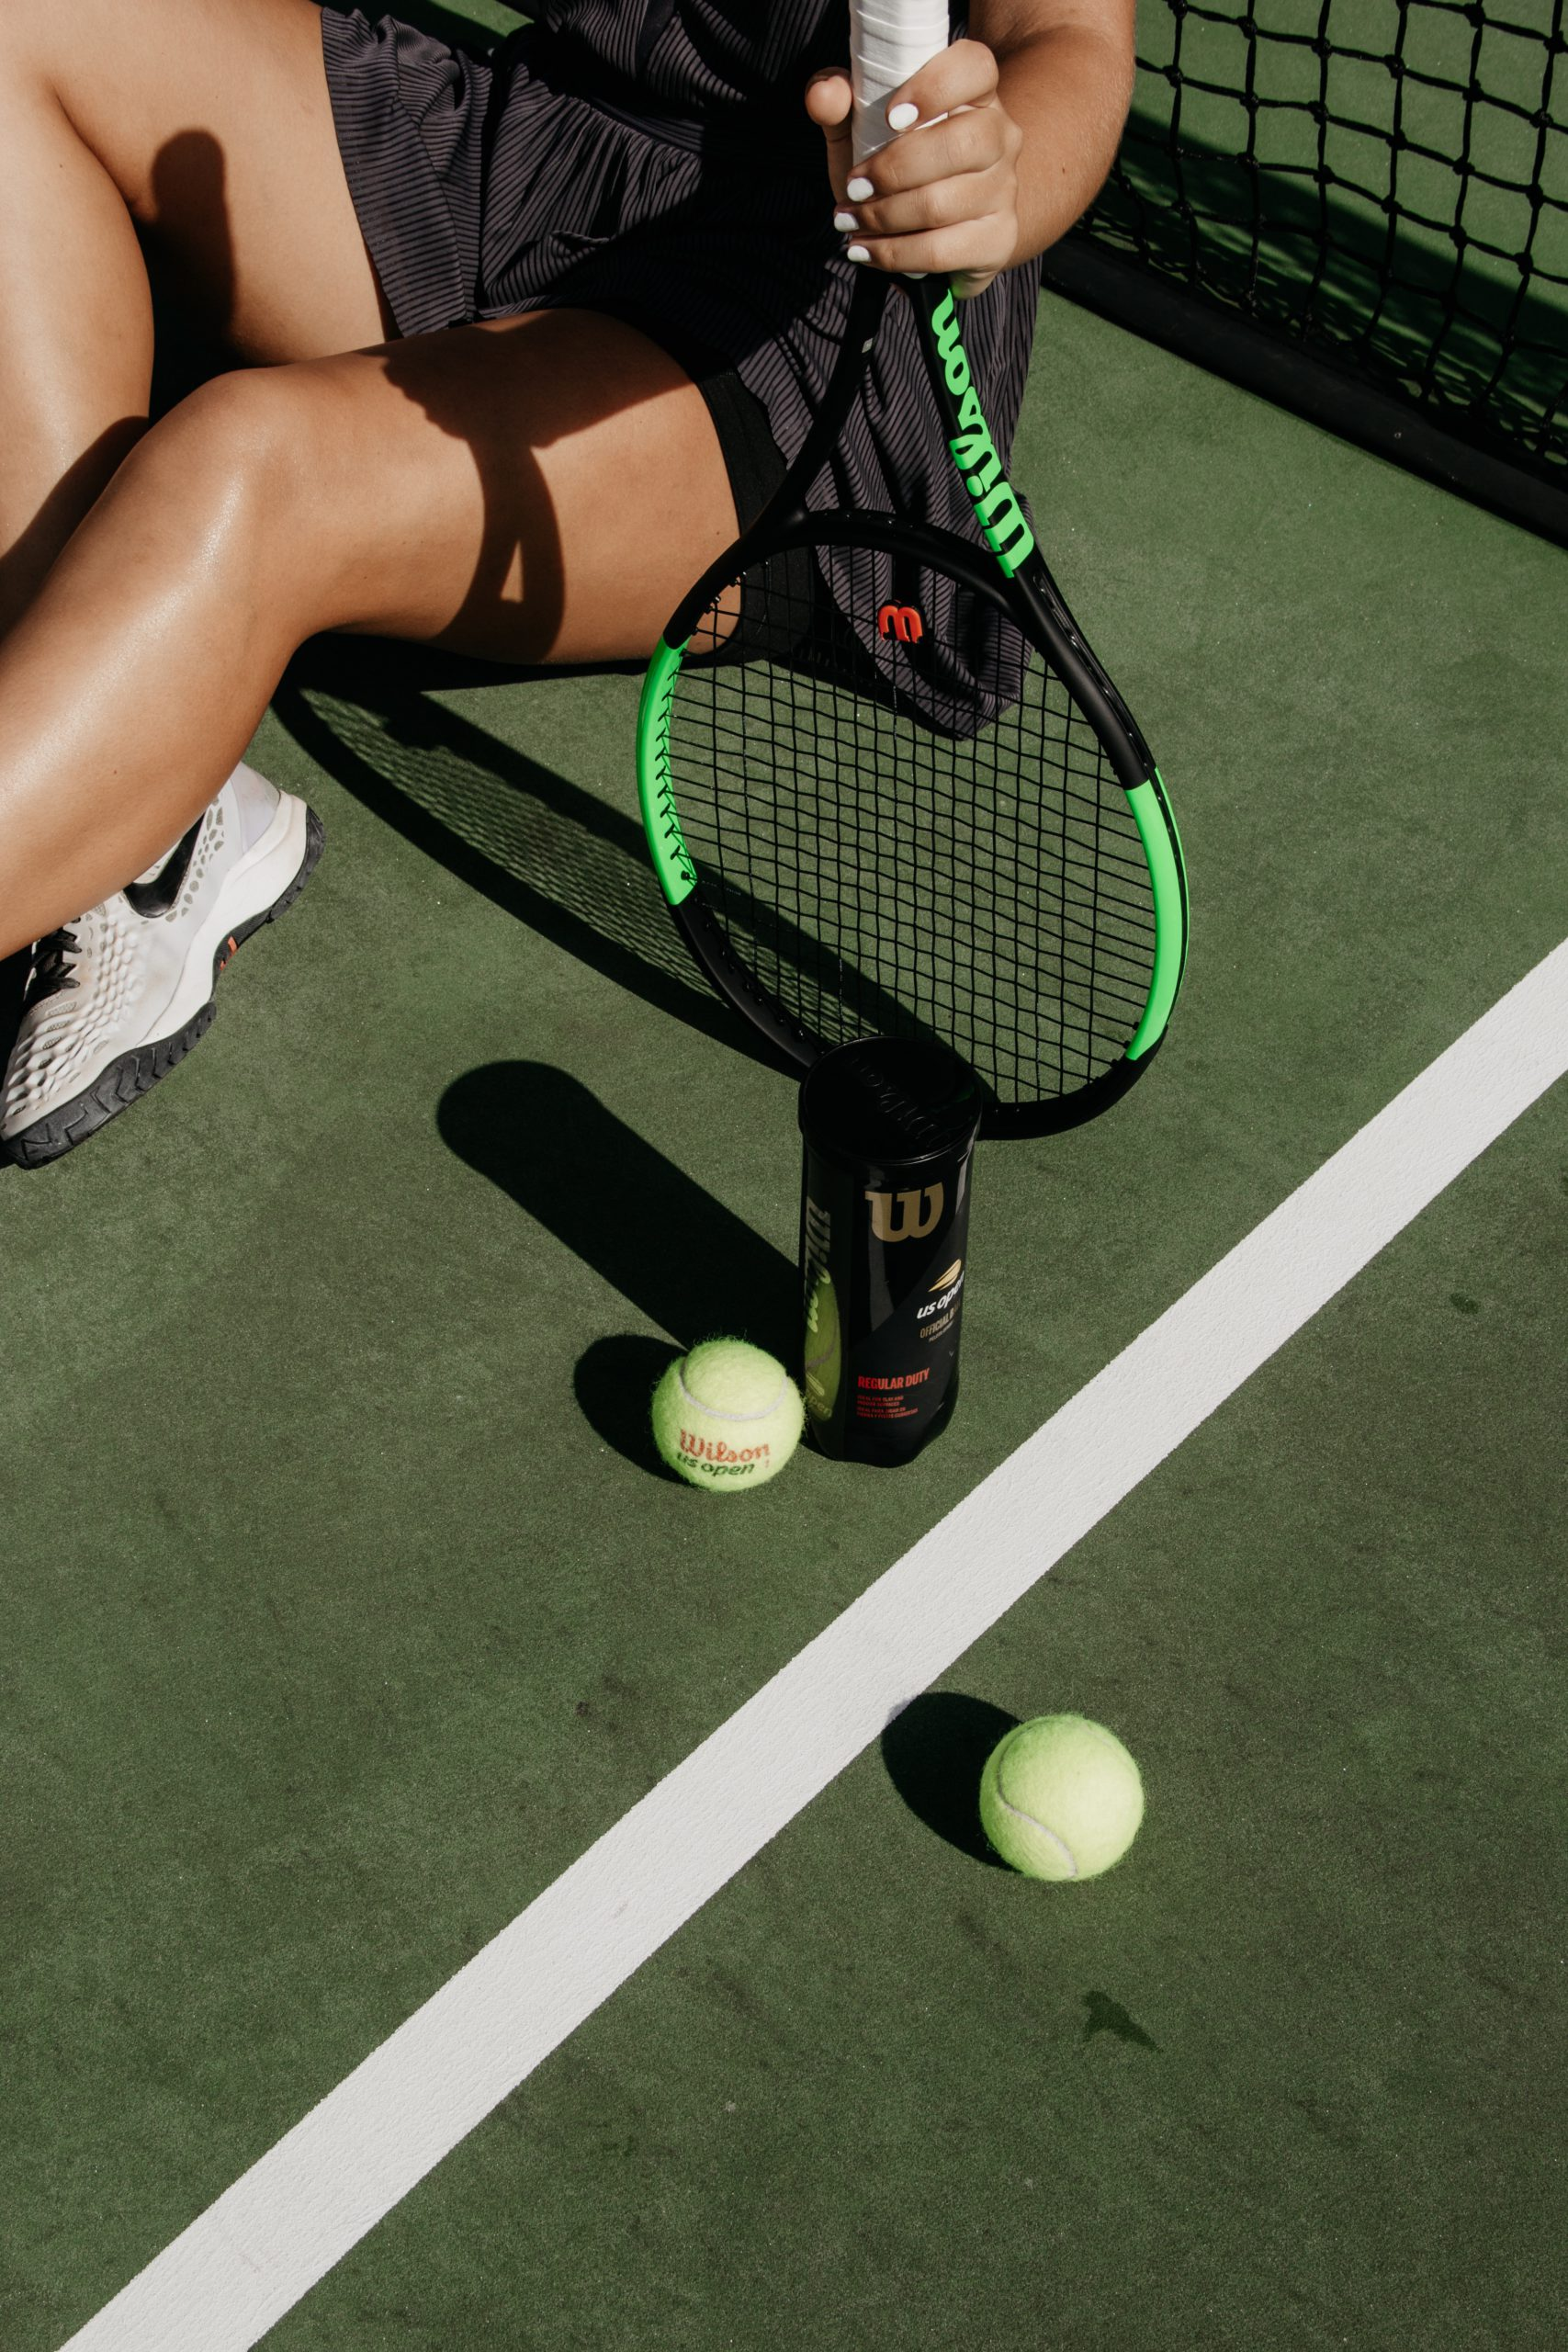 green-tennis-balls-and-black-racket-2996254